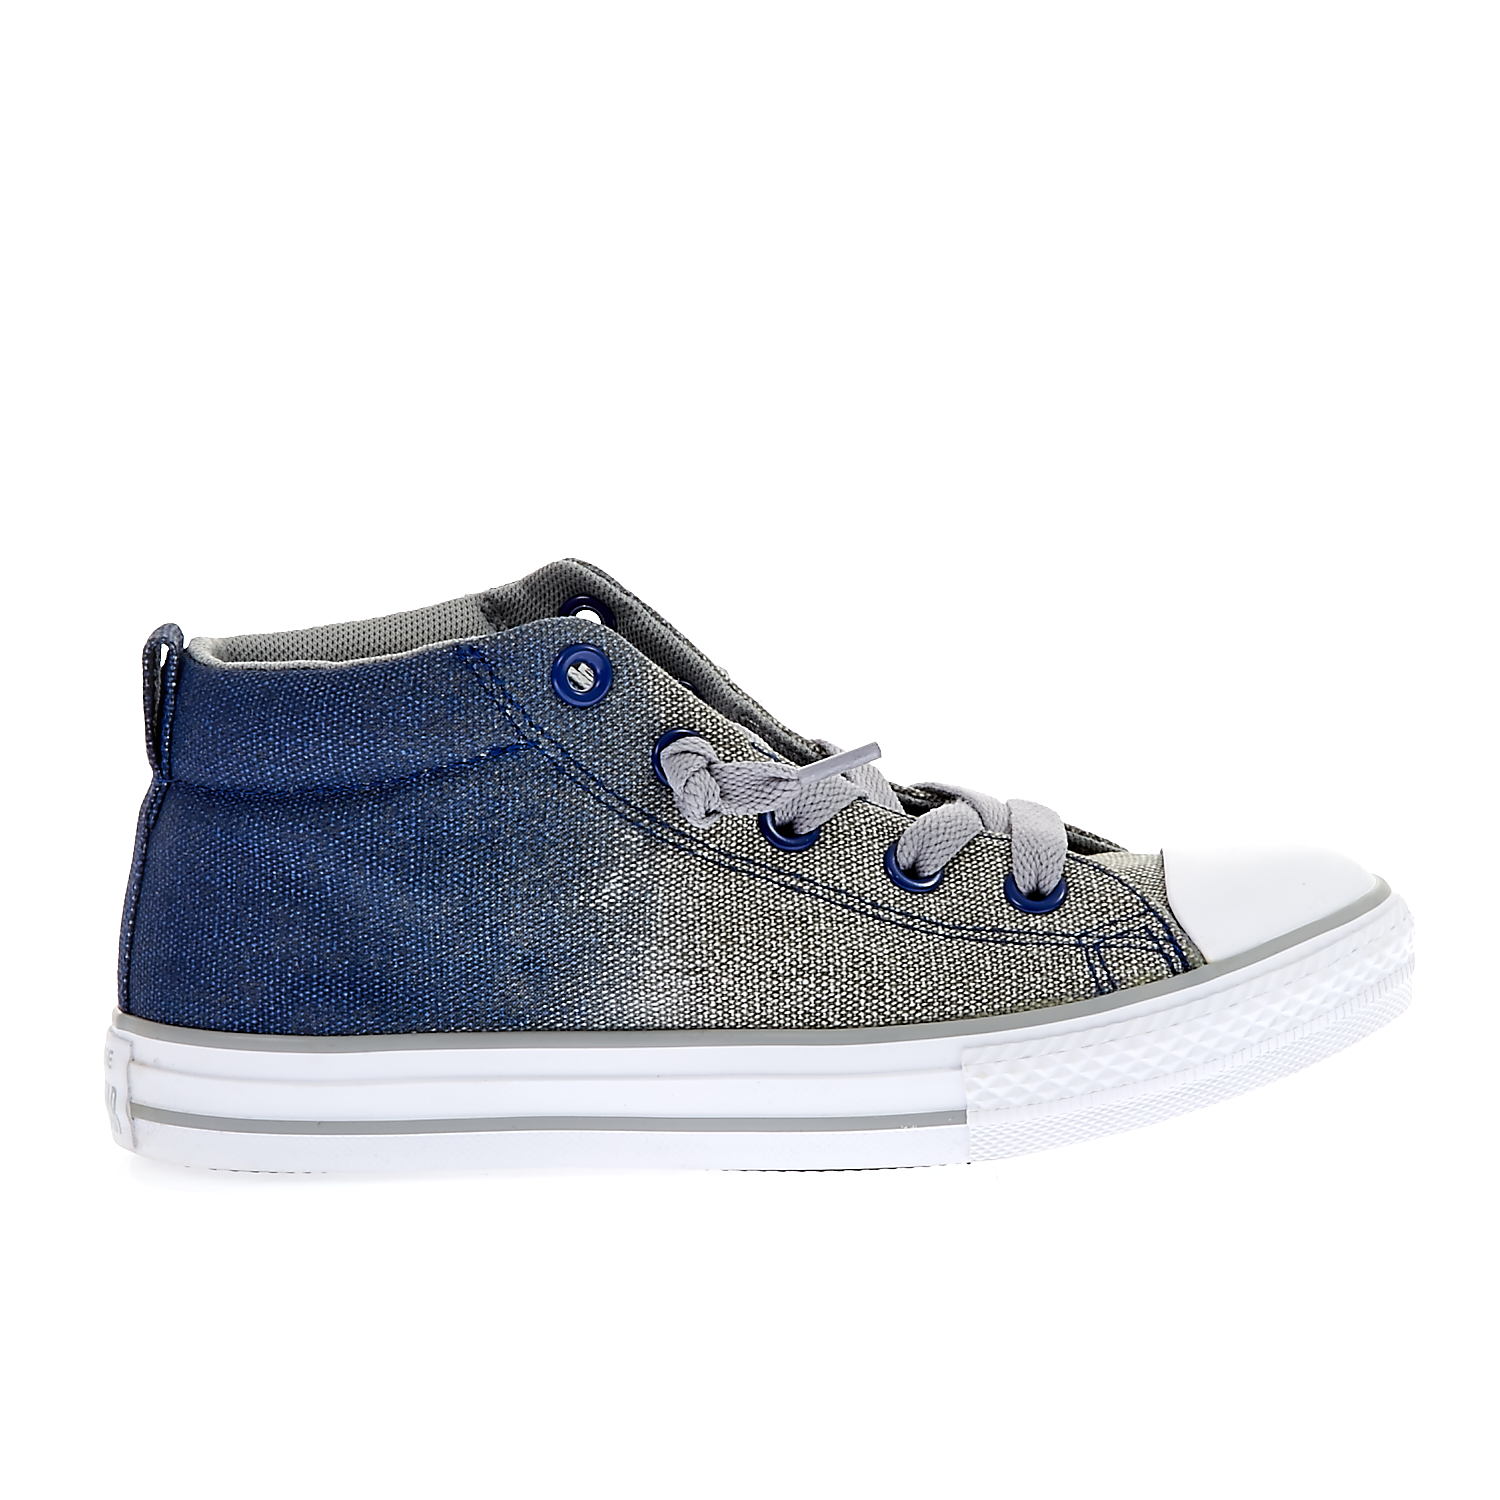 CONVERSE - Παιδικά παπούτσια Chuck Taylor All Star Street M μπλε